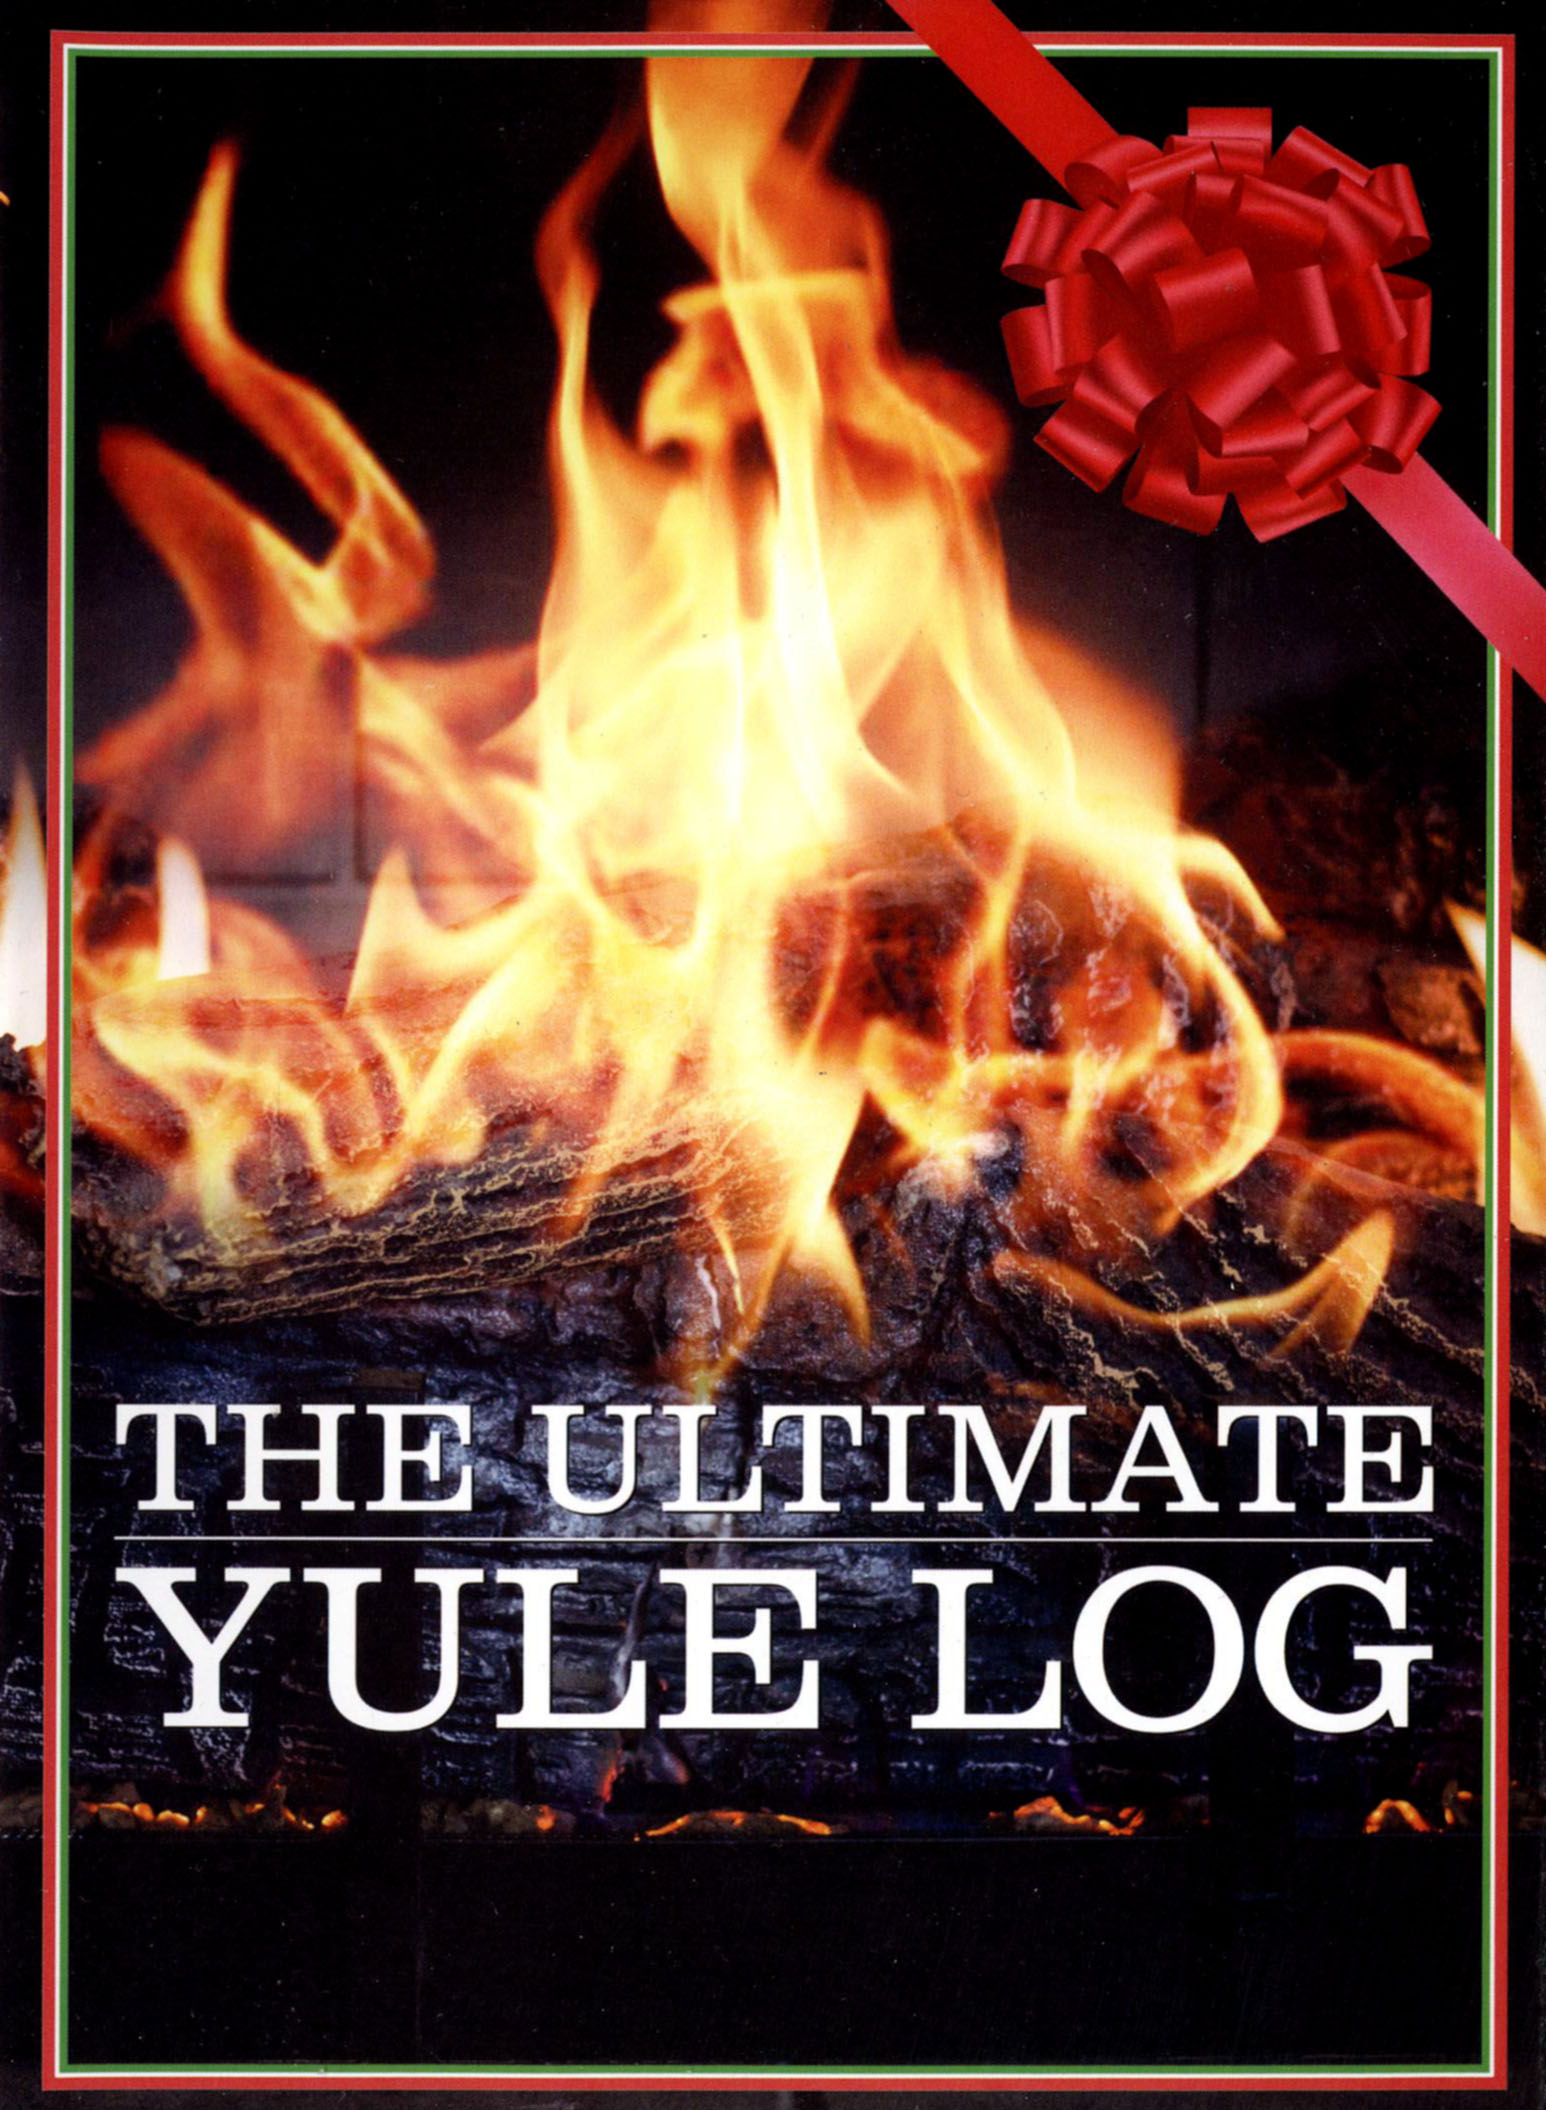 The Ultimate Yule Log